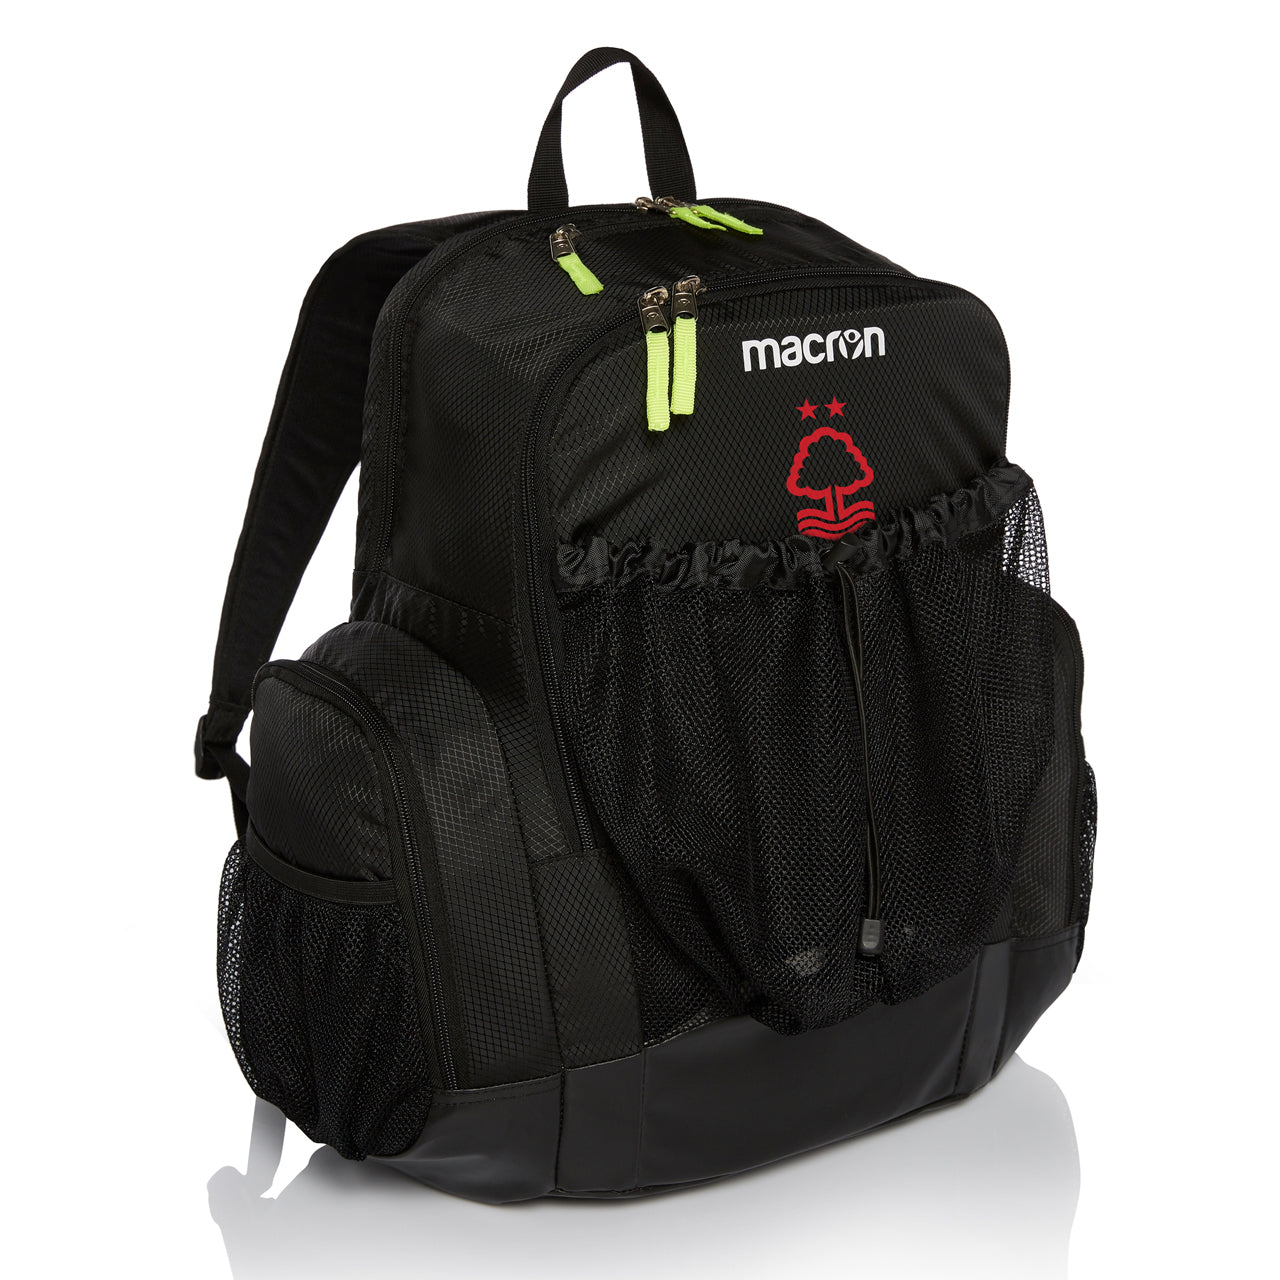 NFFC Black Macron Backpack